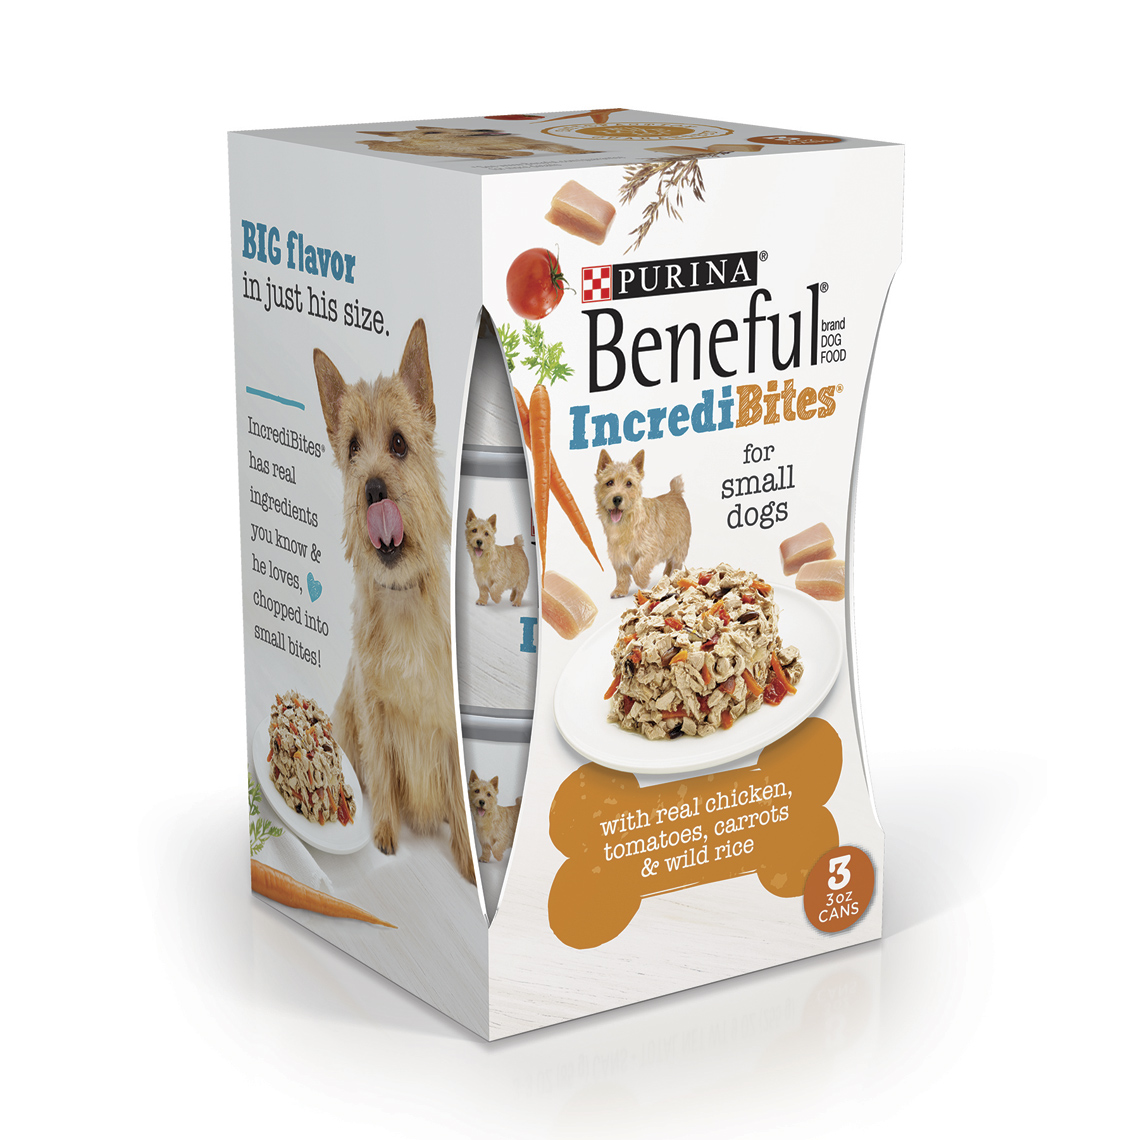 Purina beneful packaging shaina fishman